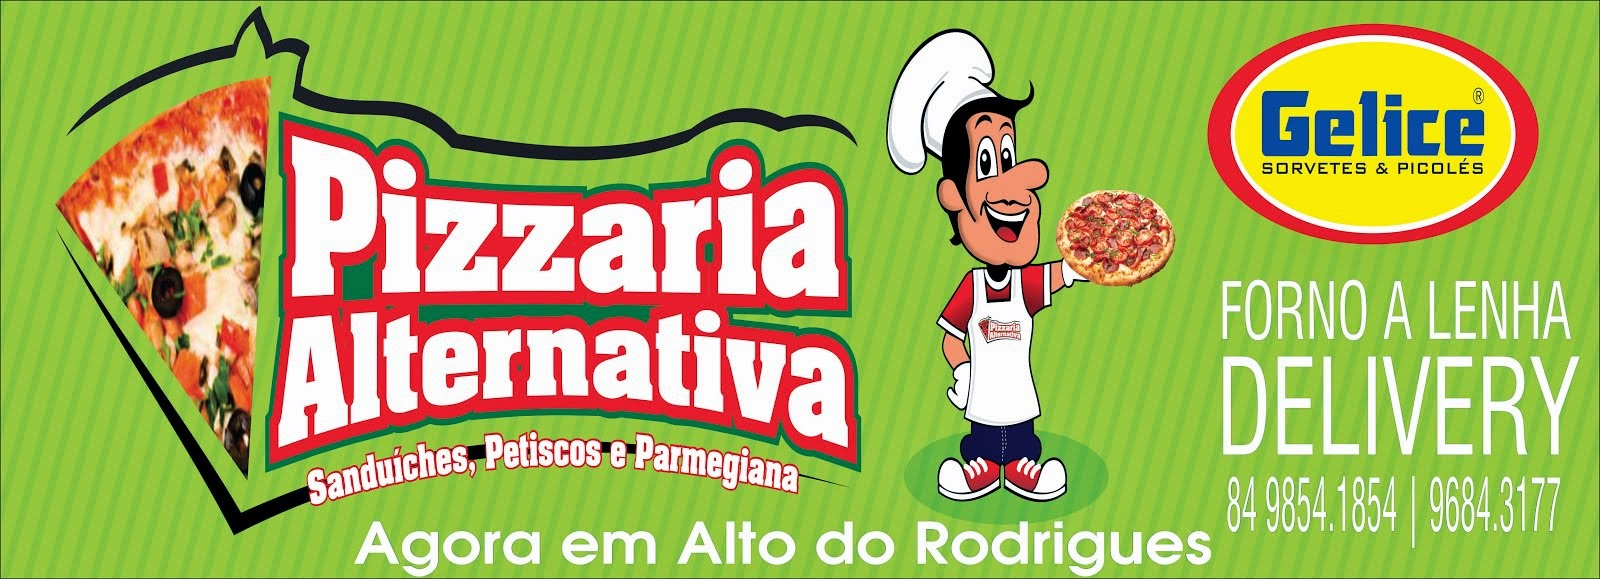 DISK PIZZA 9854 1854/ 9684 3177